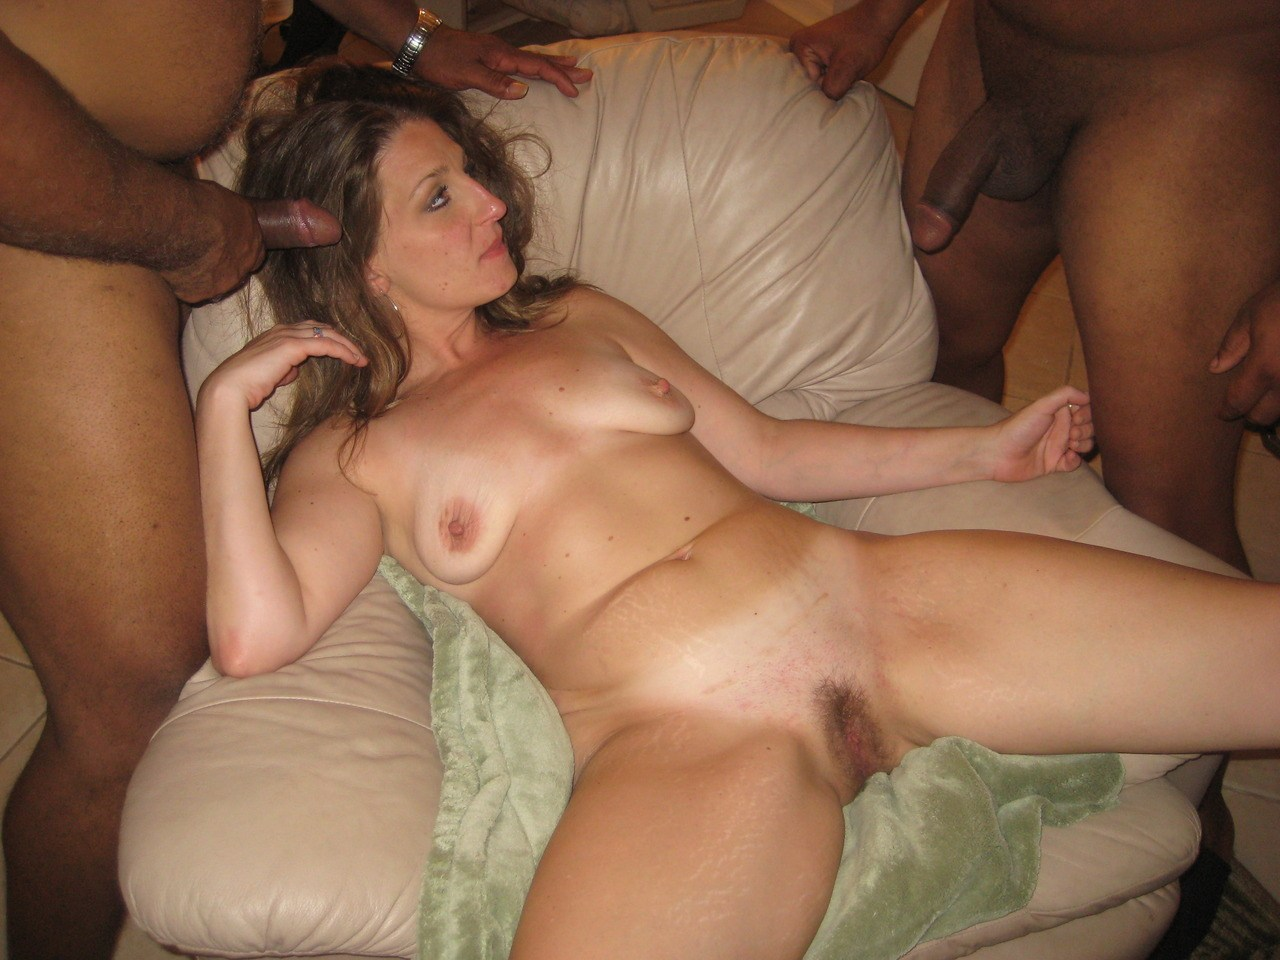 Slut wife movie